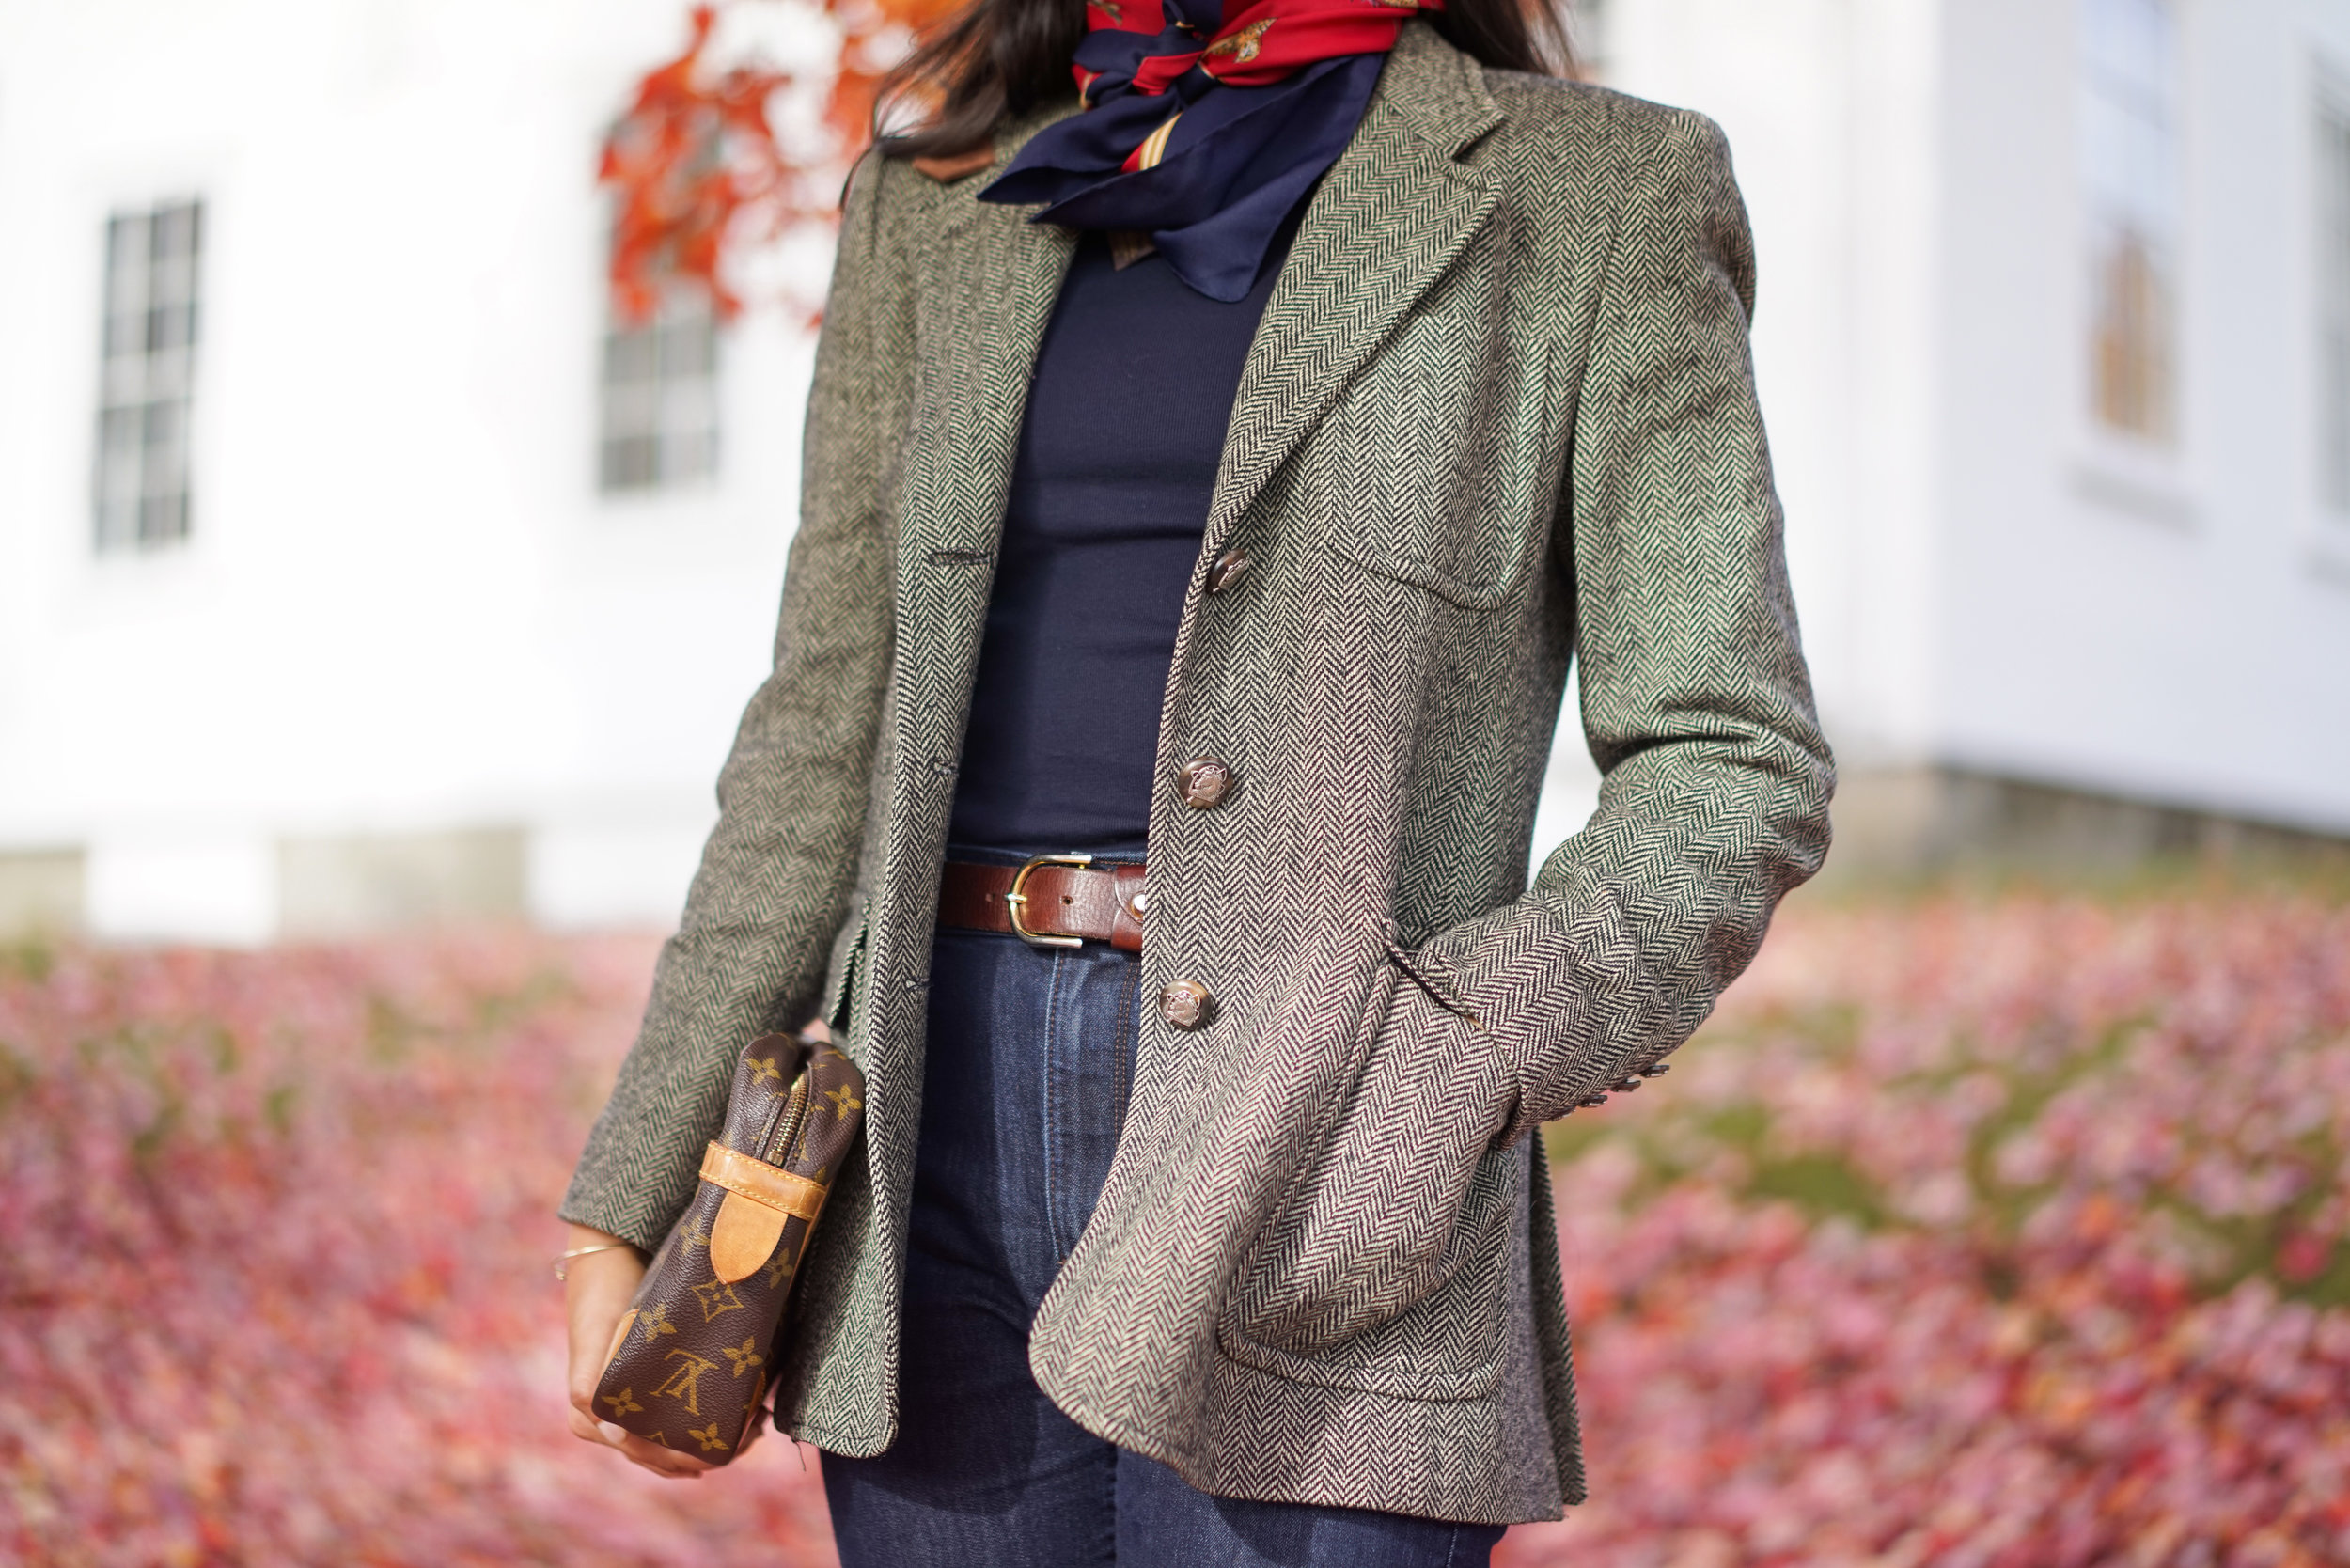 fall-Capsule-wardrobe-maine-ralph-lauren-herringbone-blazer-silk-scarf-louis-vuitton-clutch-fall-foliage-new-england-7.jpg